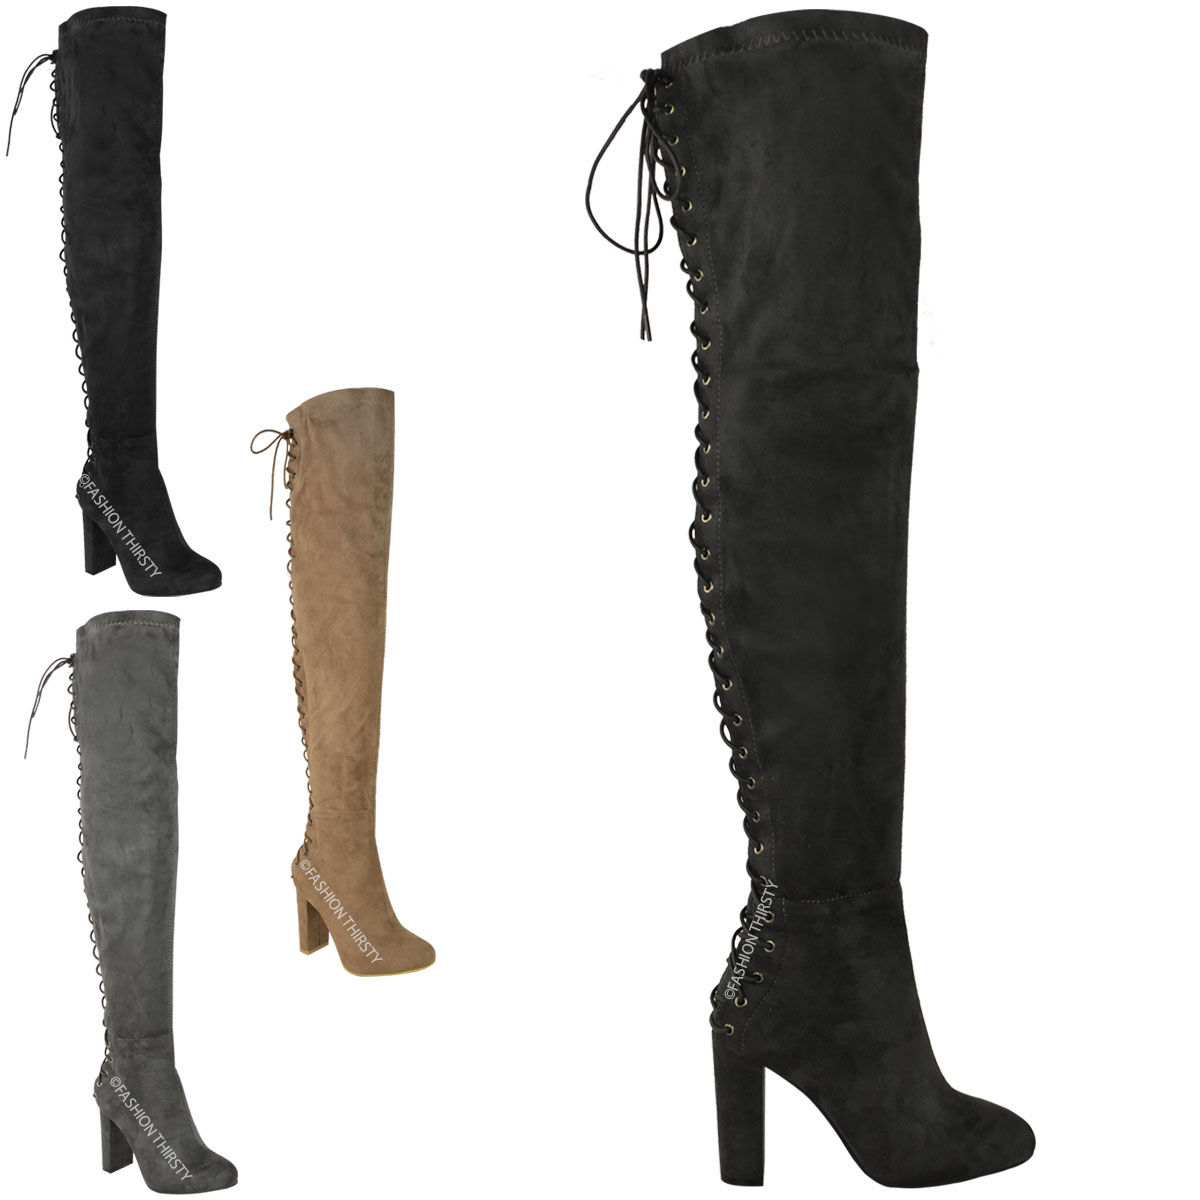 Womens Stretchy Faux Suede Block Heels Over Knee Thigh High Boots Shoes Black Sz